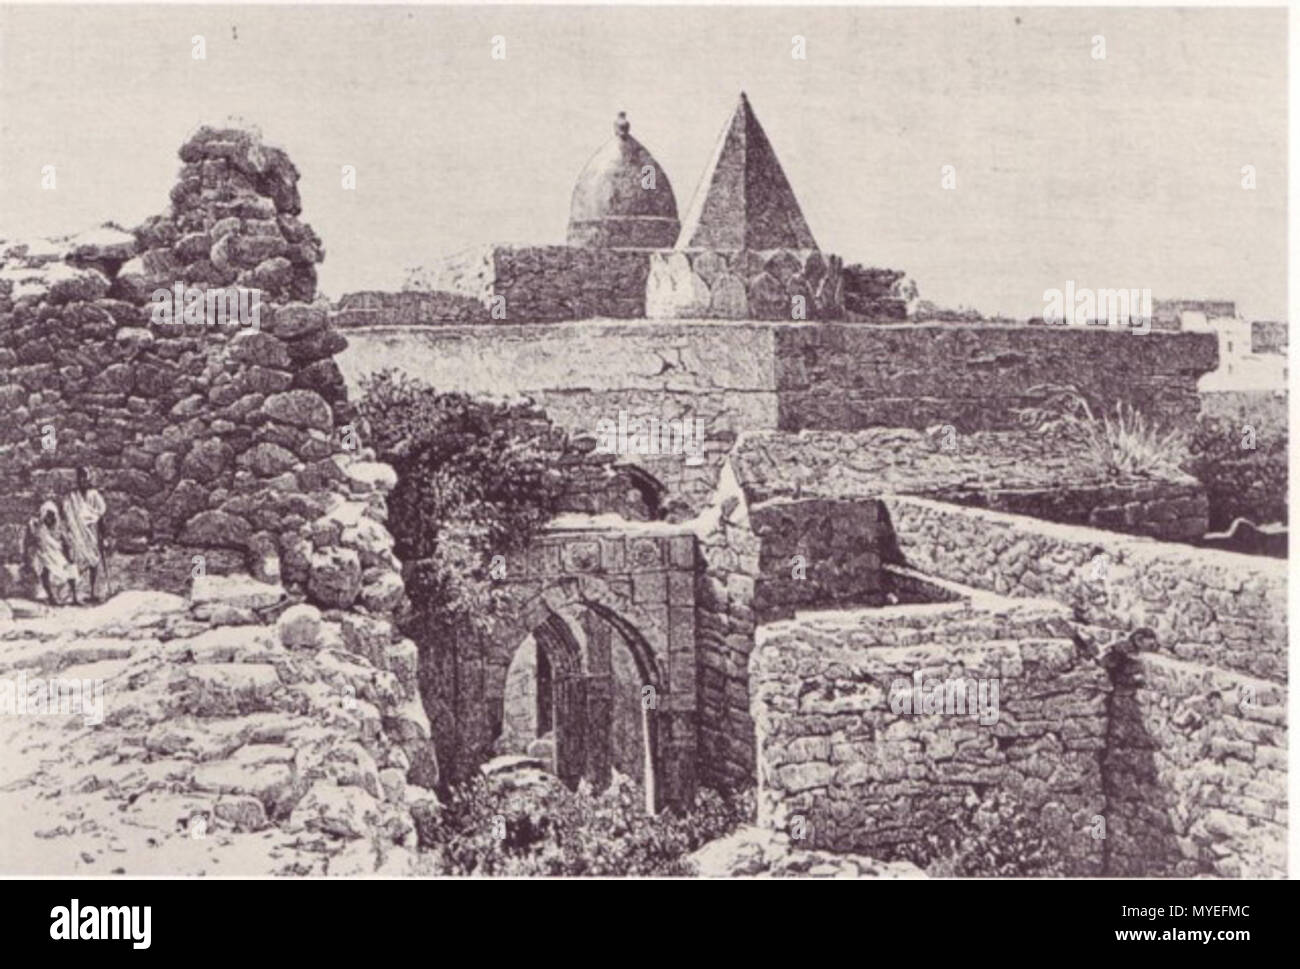 . 'The Fakhr Ad-Din Mosque' in Mogadishu in 1882. From E.Cerulli, Somalia, Scritti Vari Editi ed Inediti, Vol. 1., Fig. XV. Istituto Poligrafico dello Stato, P.V., Rome, 1957. Figure is referenced as Dal Voyage chez les Benadirs di G. Revoil. Figure courtesy Library of Congress' (from page 138 of 'Somalia in Word and Image', 1986, Ed by K.S. Loughran., J.L. Loughran., J.W. Johnson., S.S. Samatar. Published by the Foundation for Cross Cultural Understanding, Washington, D.C., and Indiana University Press). . This file is lacking author information. 174 Fakr Ud Din Mosque - Stock Image